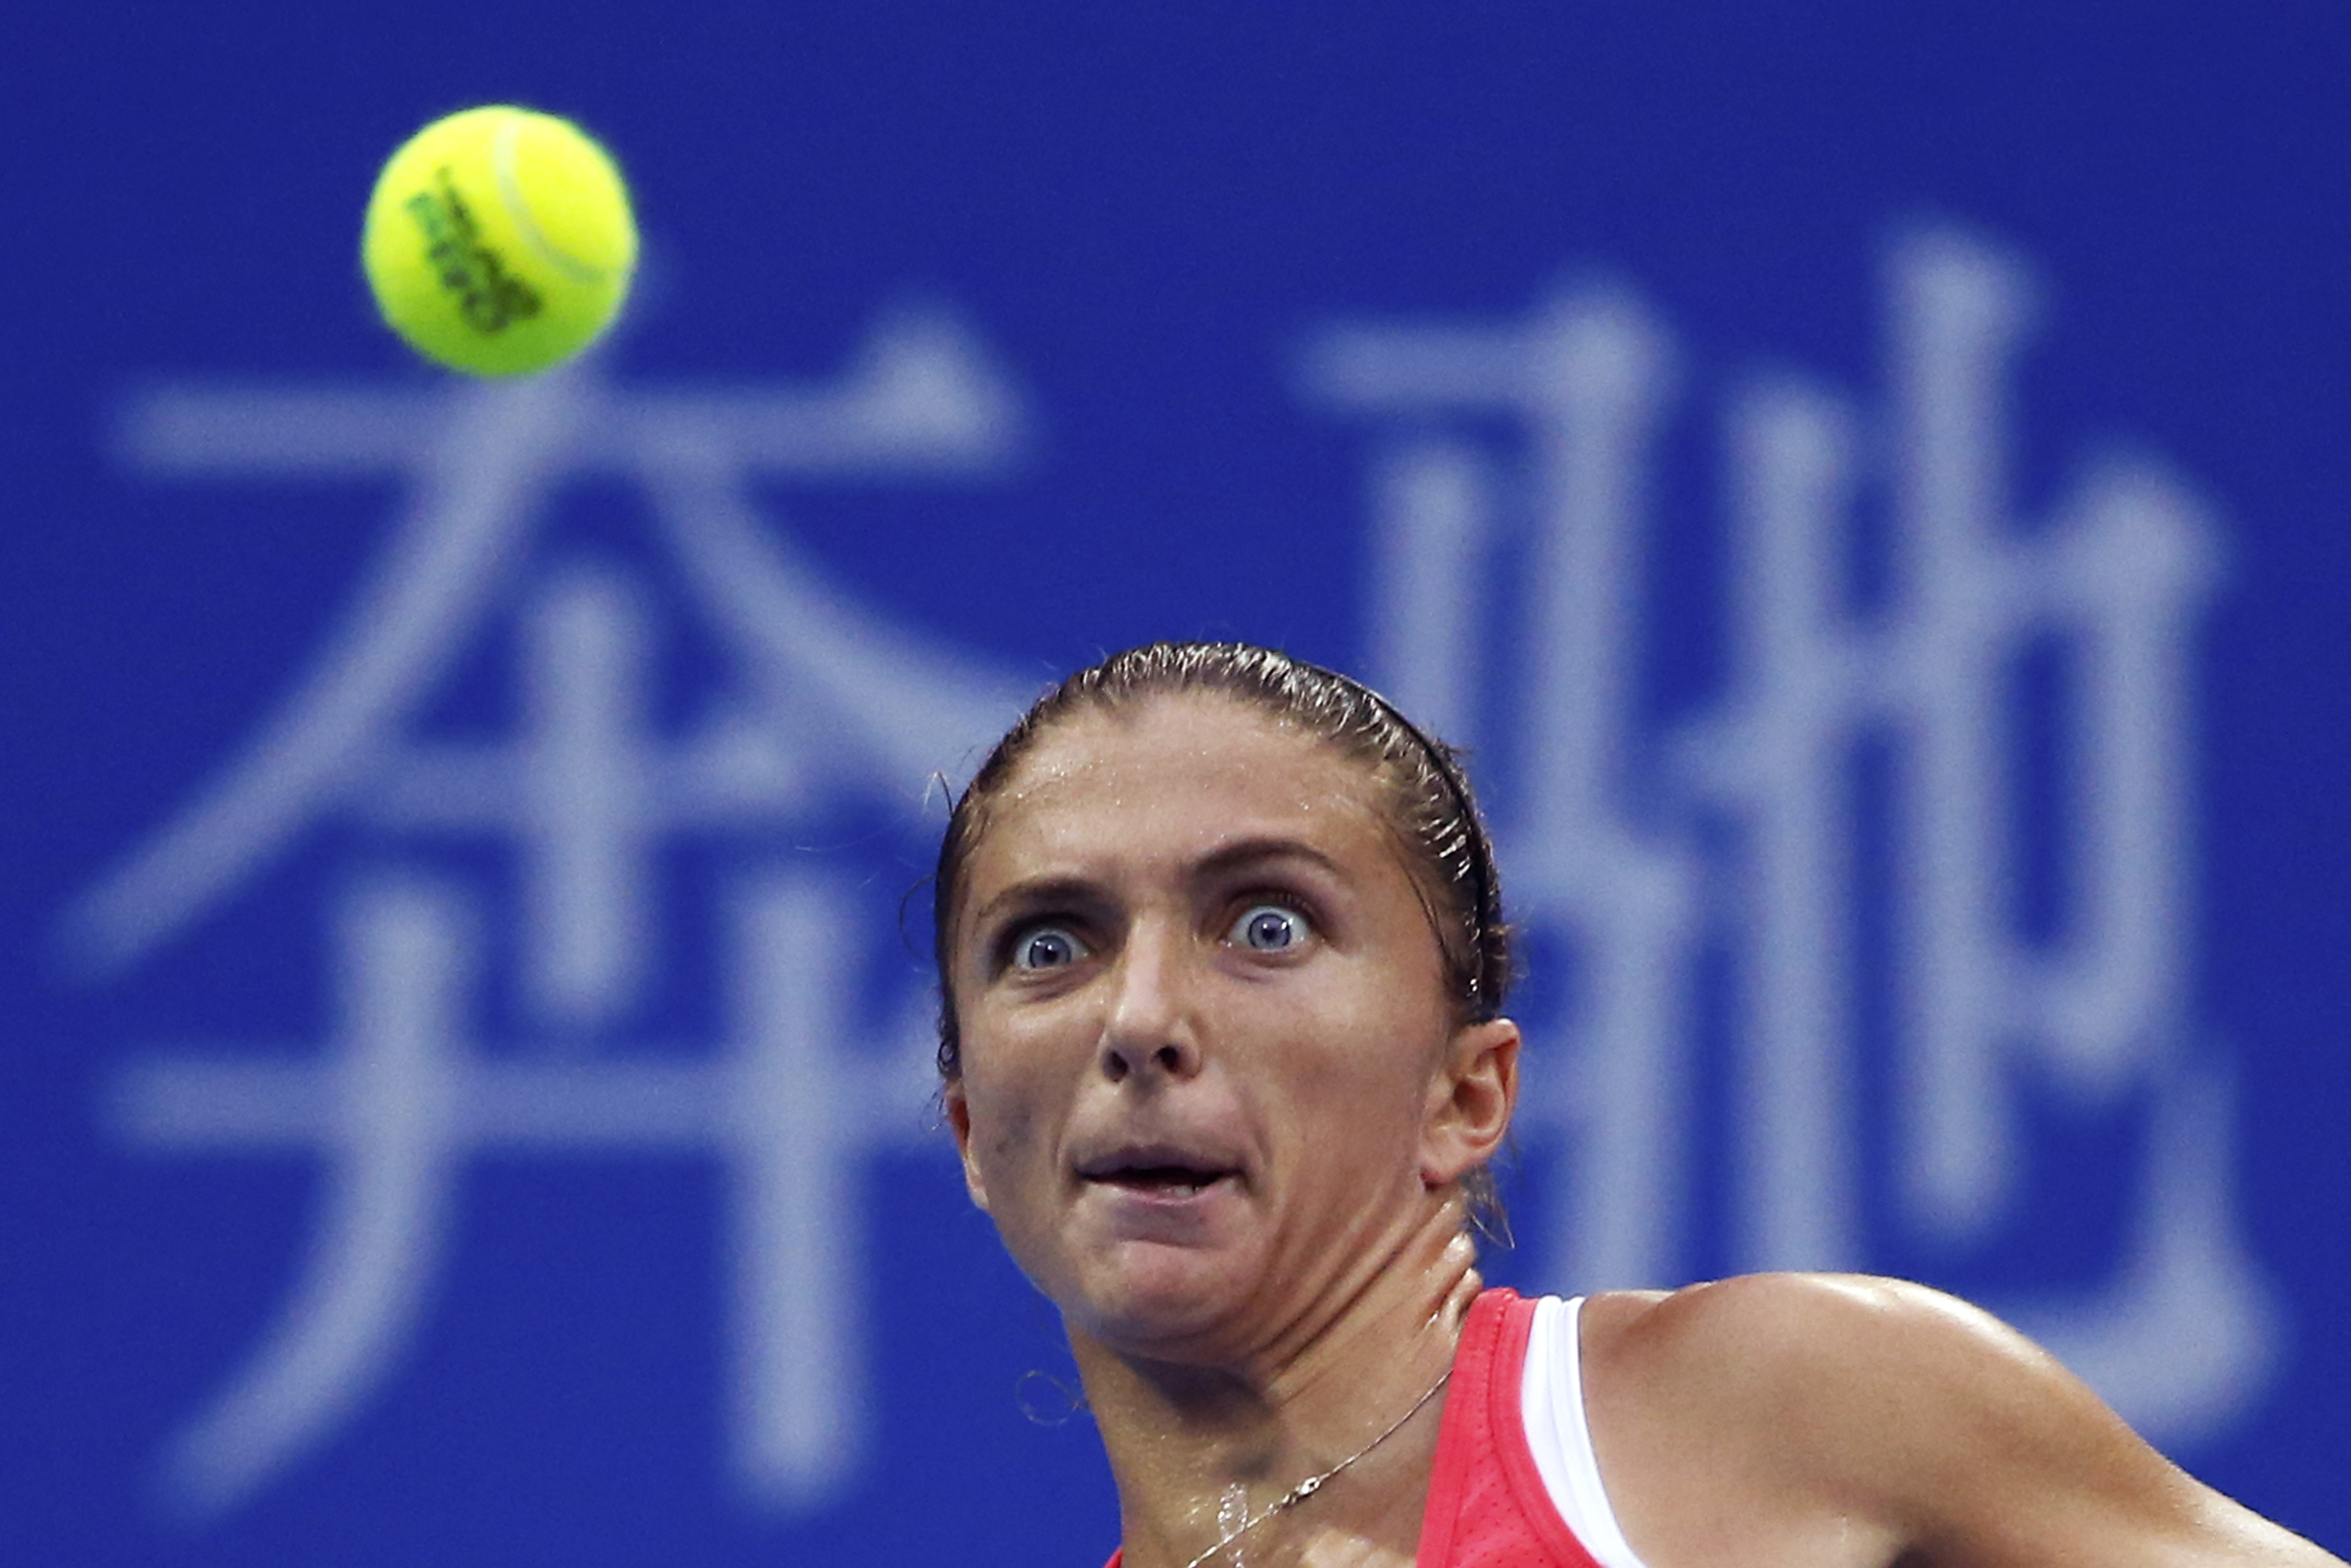 Sara Errani of Italy eyes on the ball as she plays against Andrea Petkovic of Germany during their third round women's singles match of the China Open tennis tournament at the National Tennis Stadium in Beijing, Wednesday, Oct. 7, 2015. (AP Photo/Andy Won